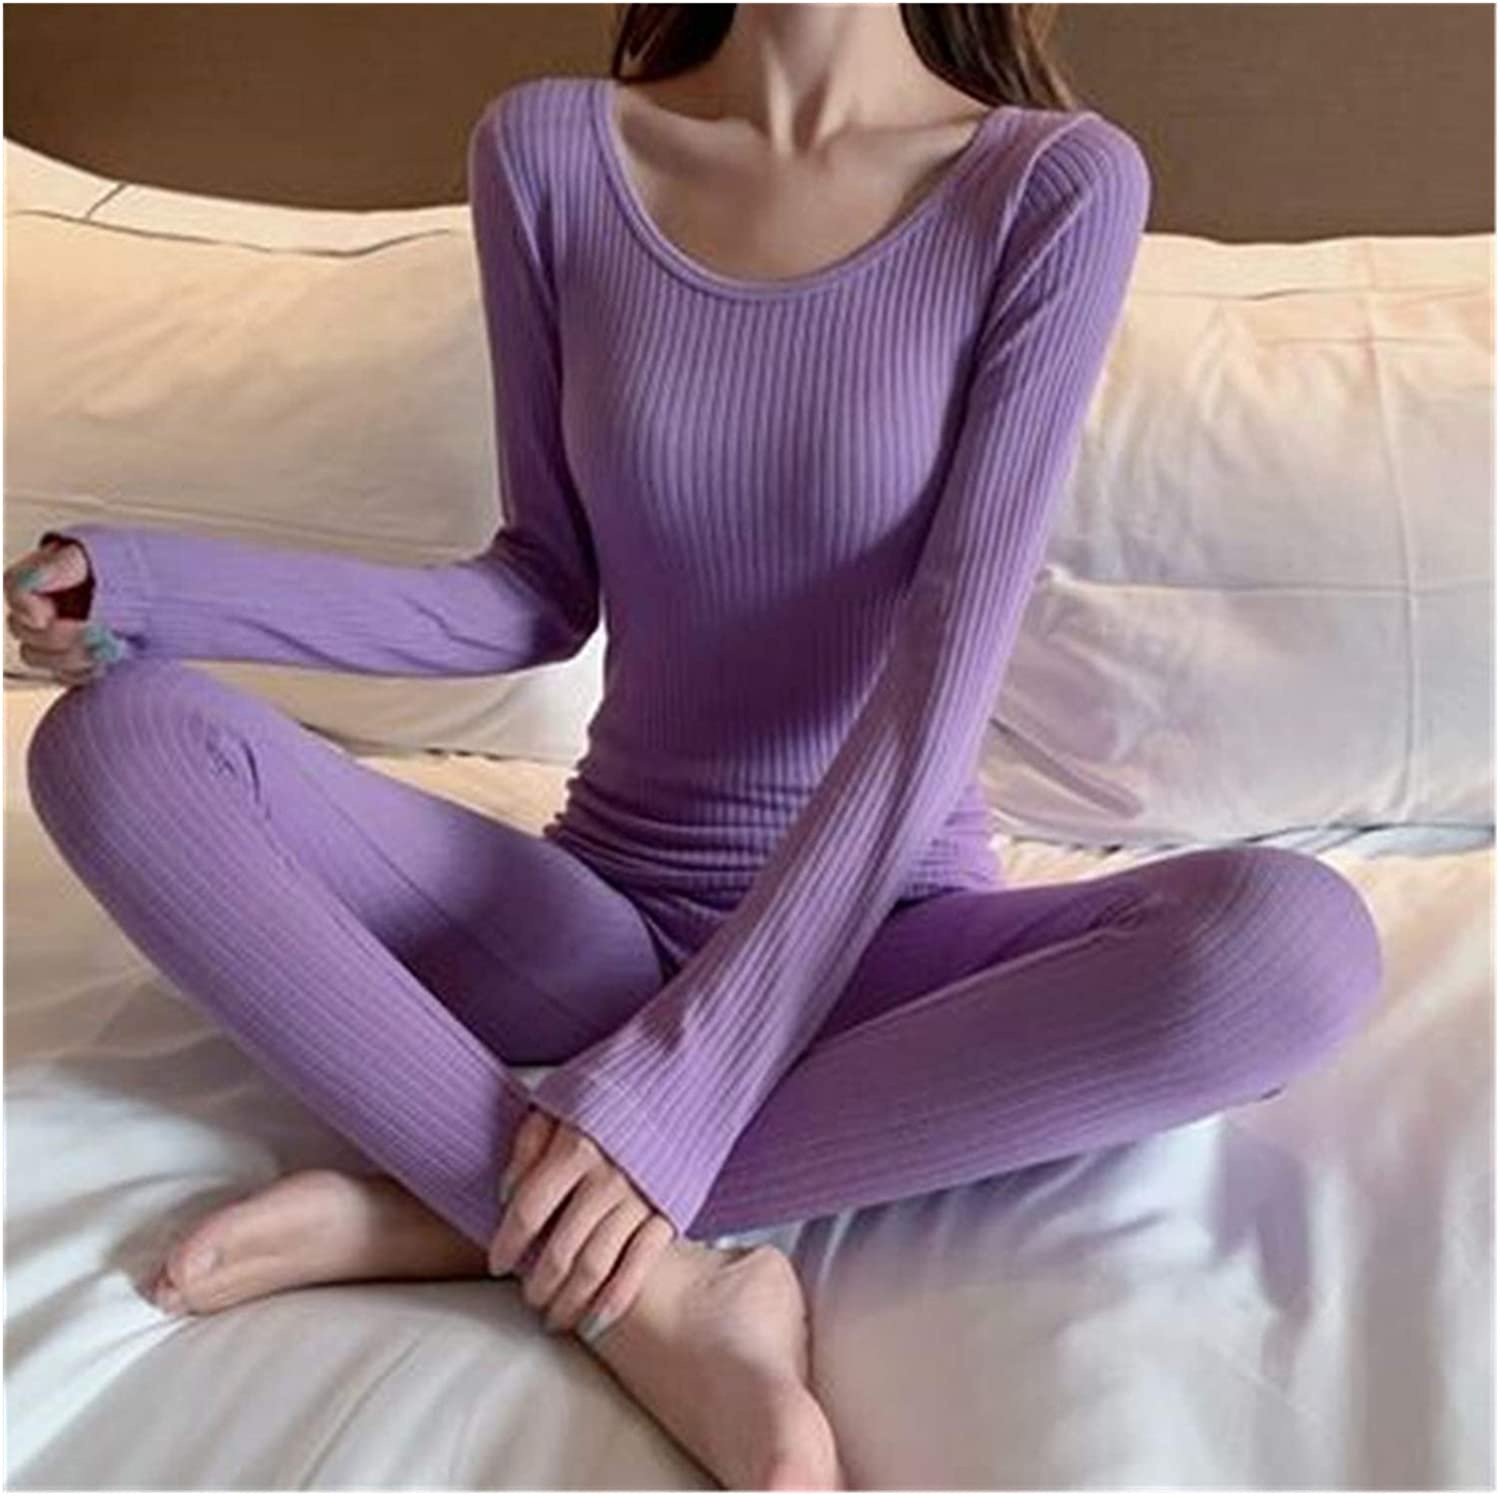 Glqwe Sexy Slim Women Winter Clothes Cotton Thermal Underwear Set Female Second Skin Thin Long Johns Ladies Pajamas Warm Suit (Color : Purple, Size : One Size)